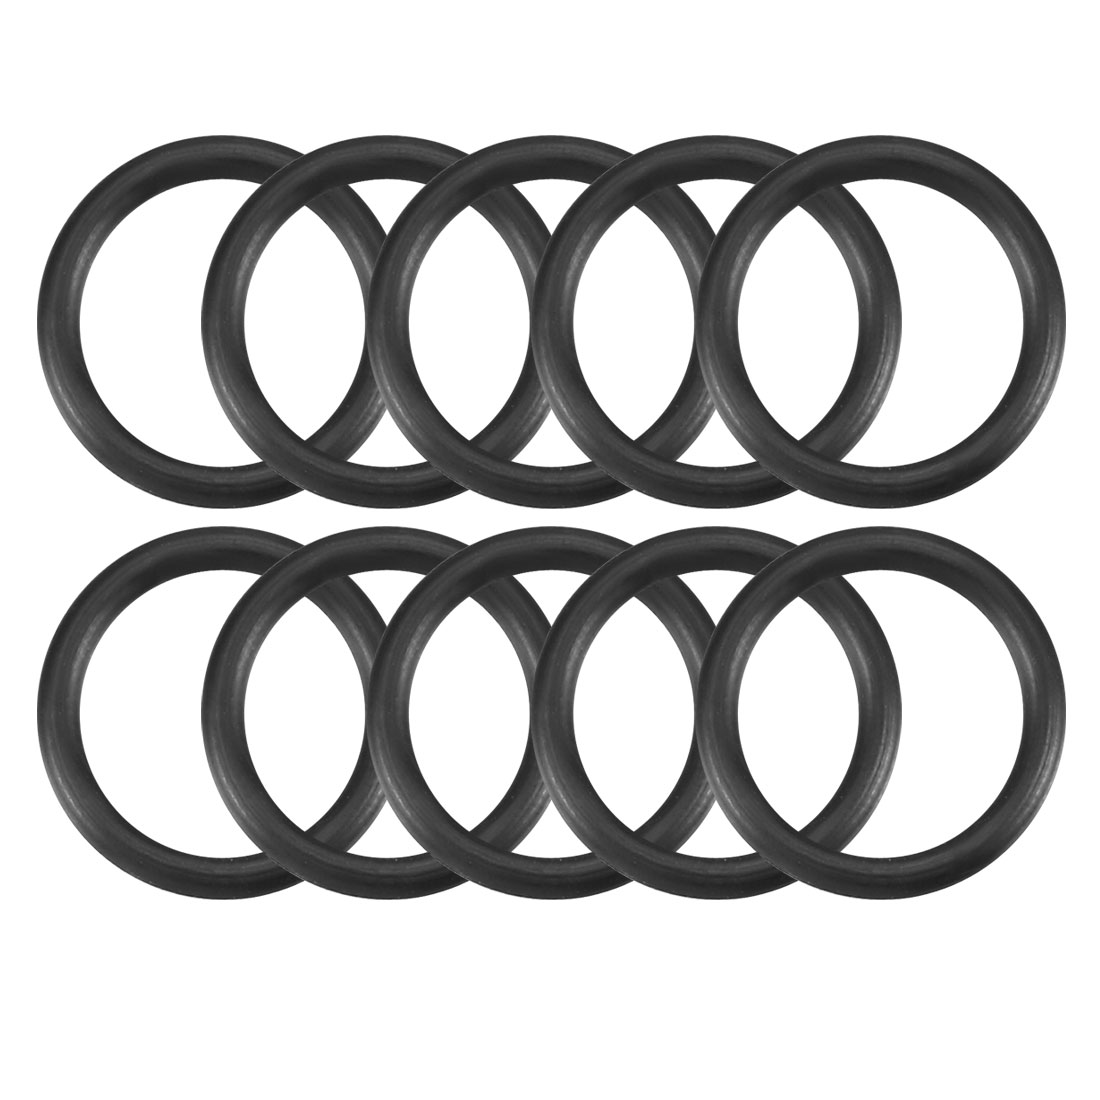 10 Pcs Black Rubber Oil Filter O Ring Sealing Gaskets 11.2mm x 1.8mm